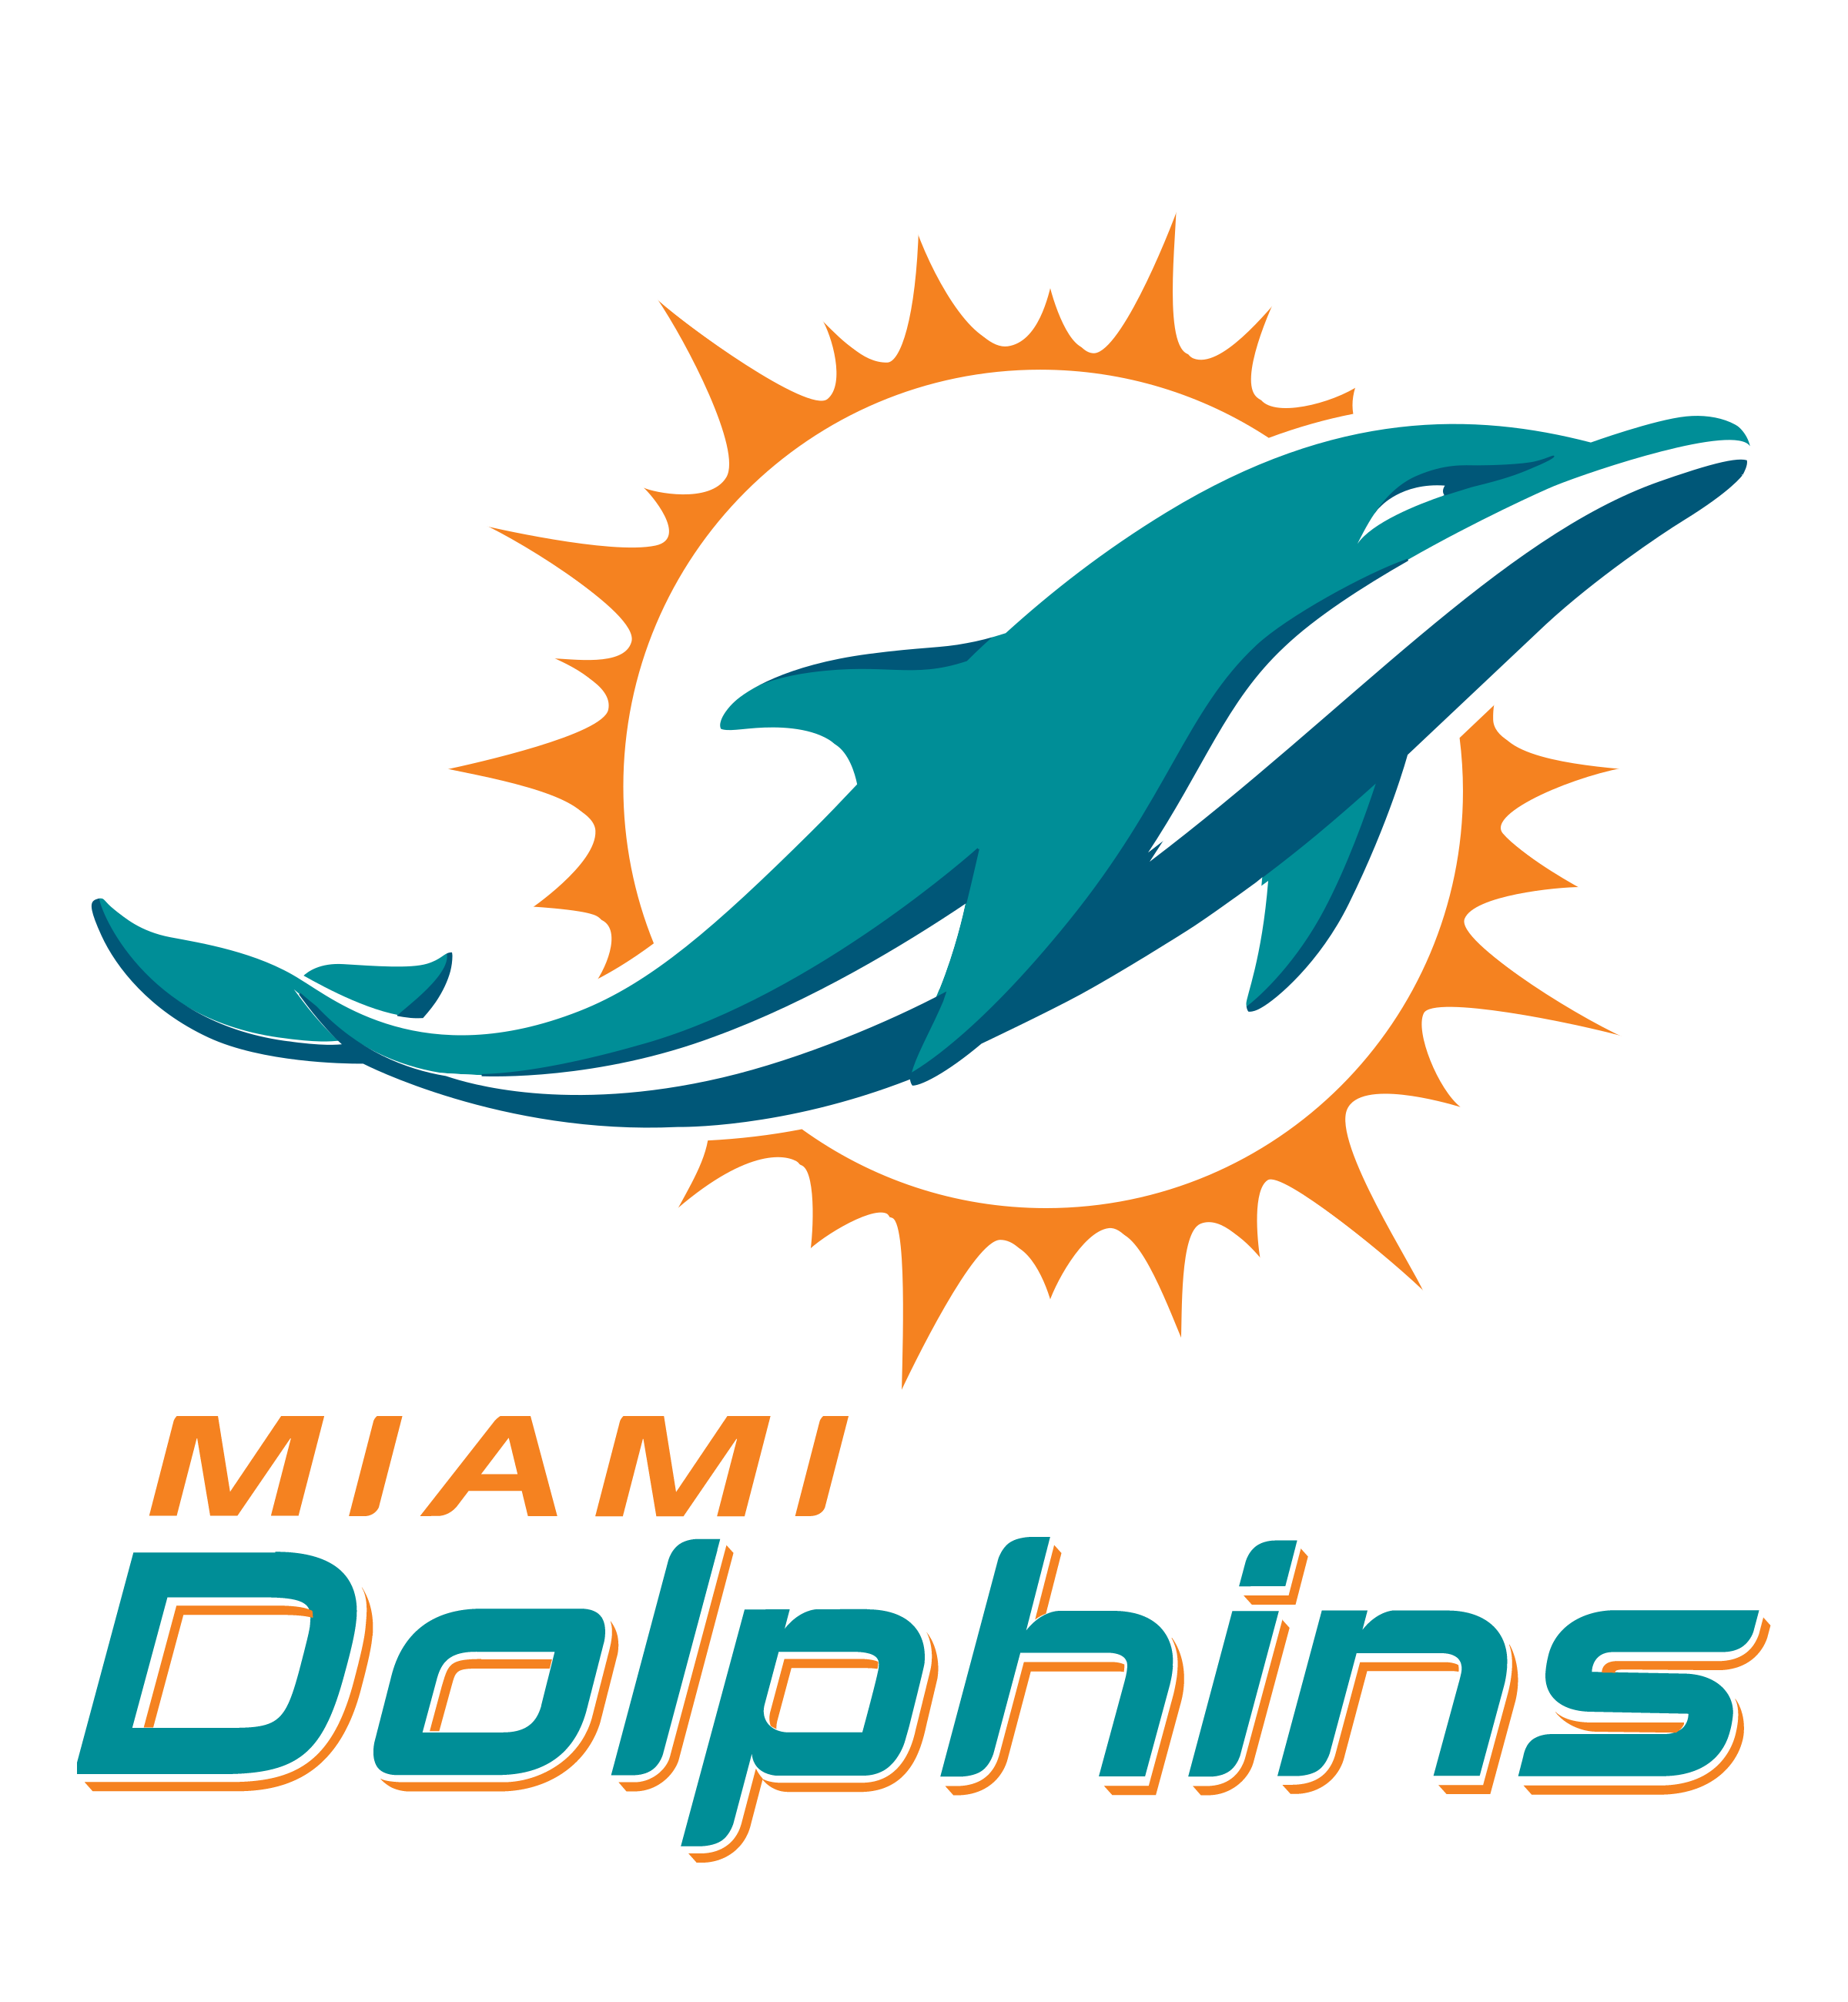 Miami Dolphins Logo PNG Transparent & SVG Vector.